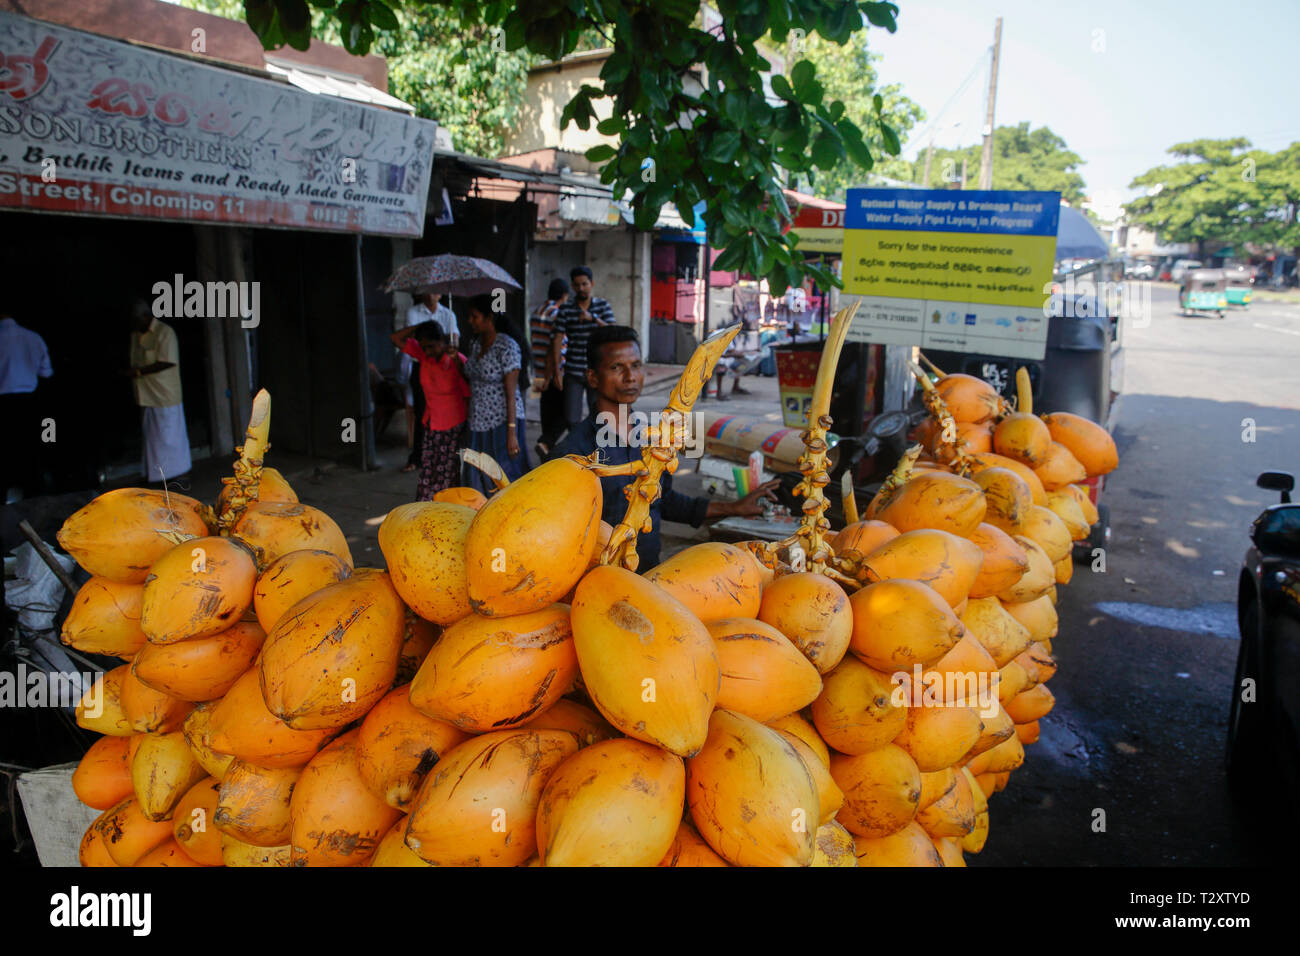 Red King coconuts for sale on the street in Colombo, Sri Lanka Stock Photo